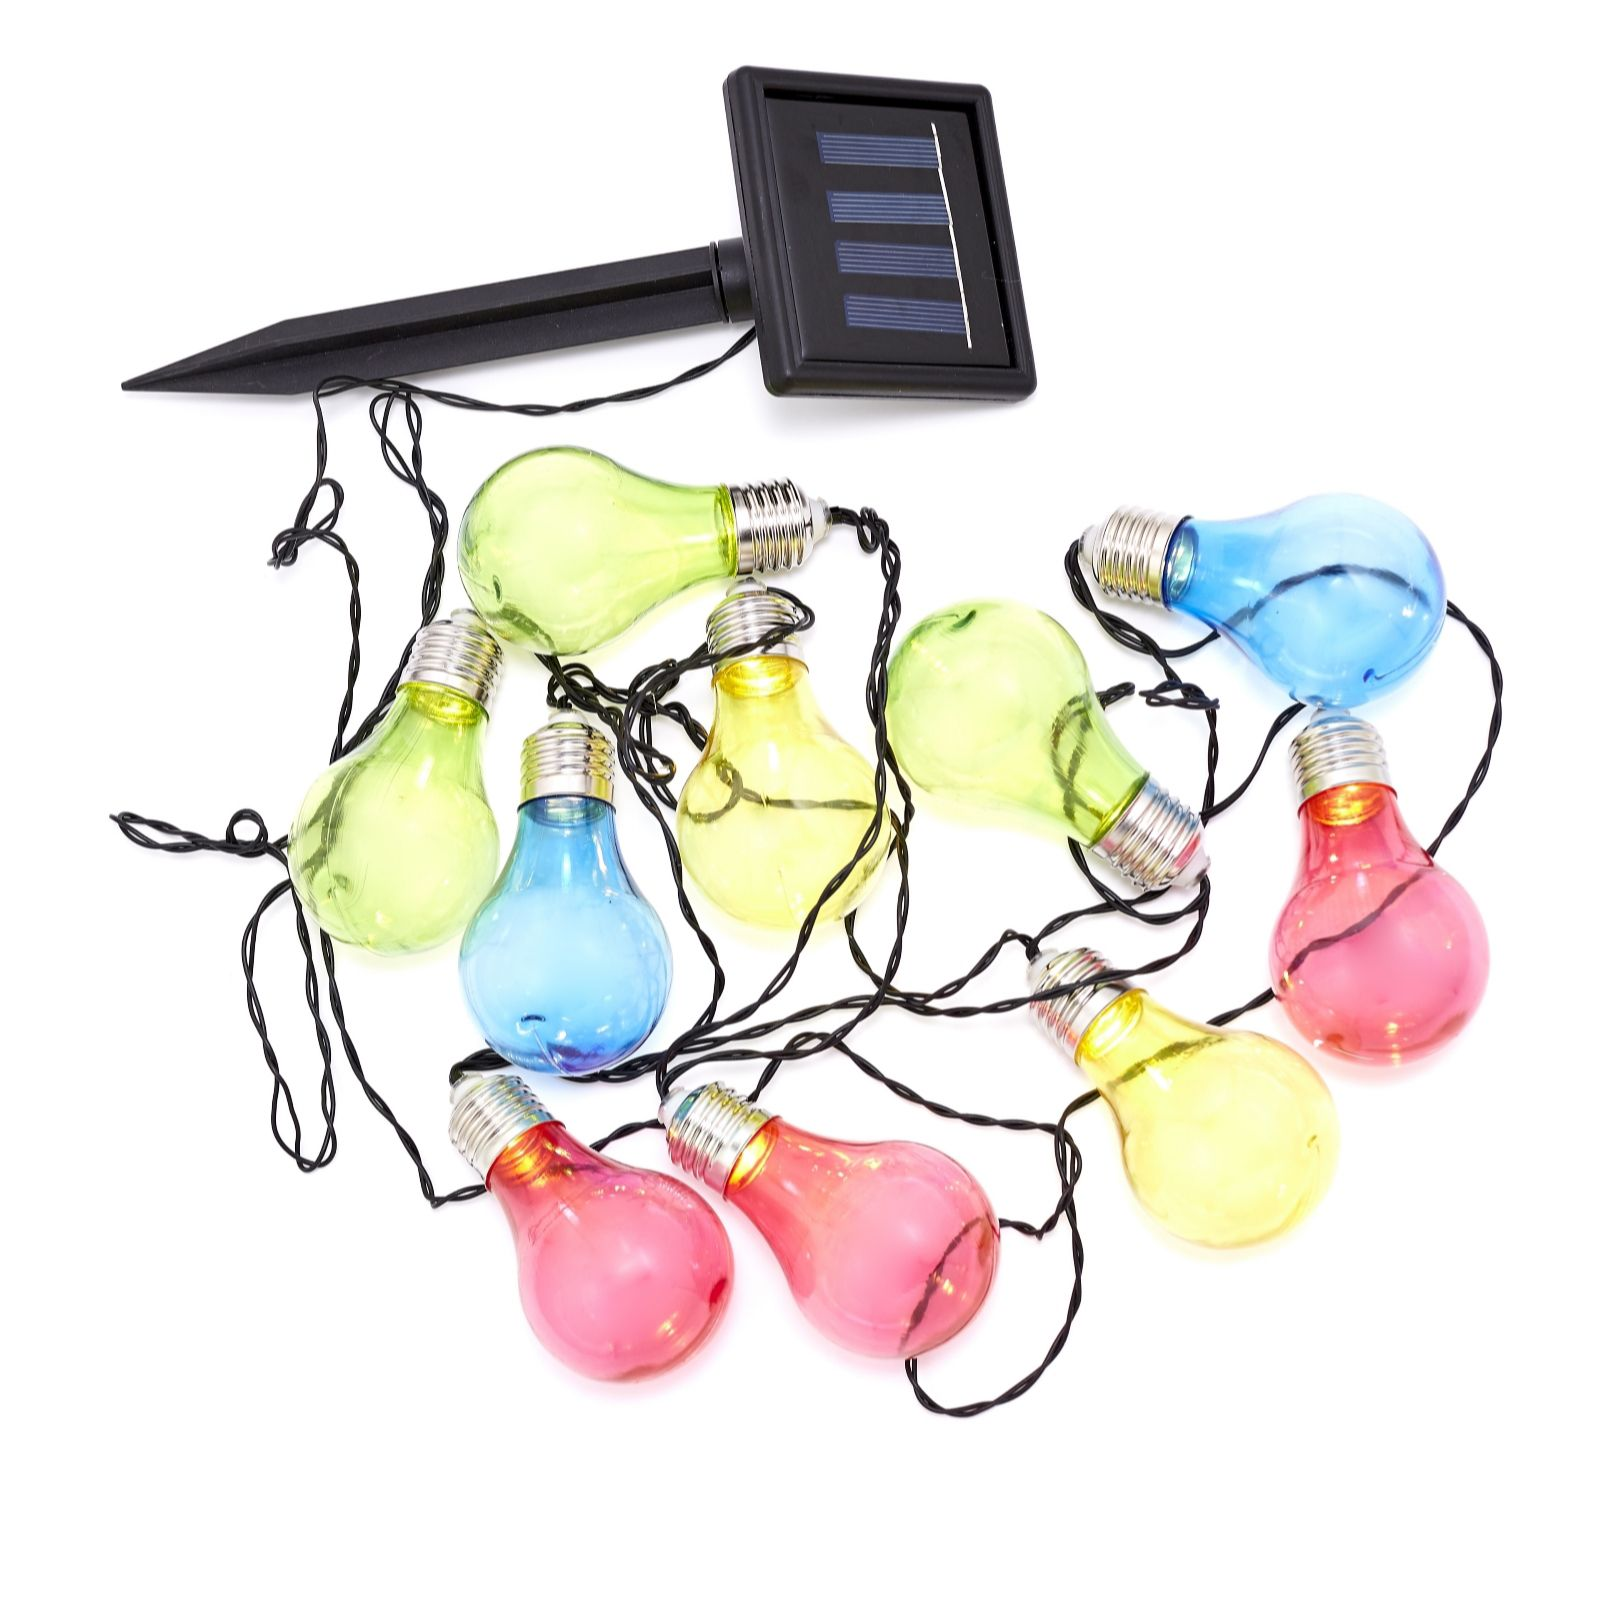 Qvc Solar String Lights : Luxform Solar Powered 10 LED Coloured Bulb String Lights - QVC UK